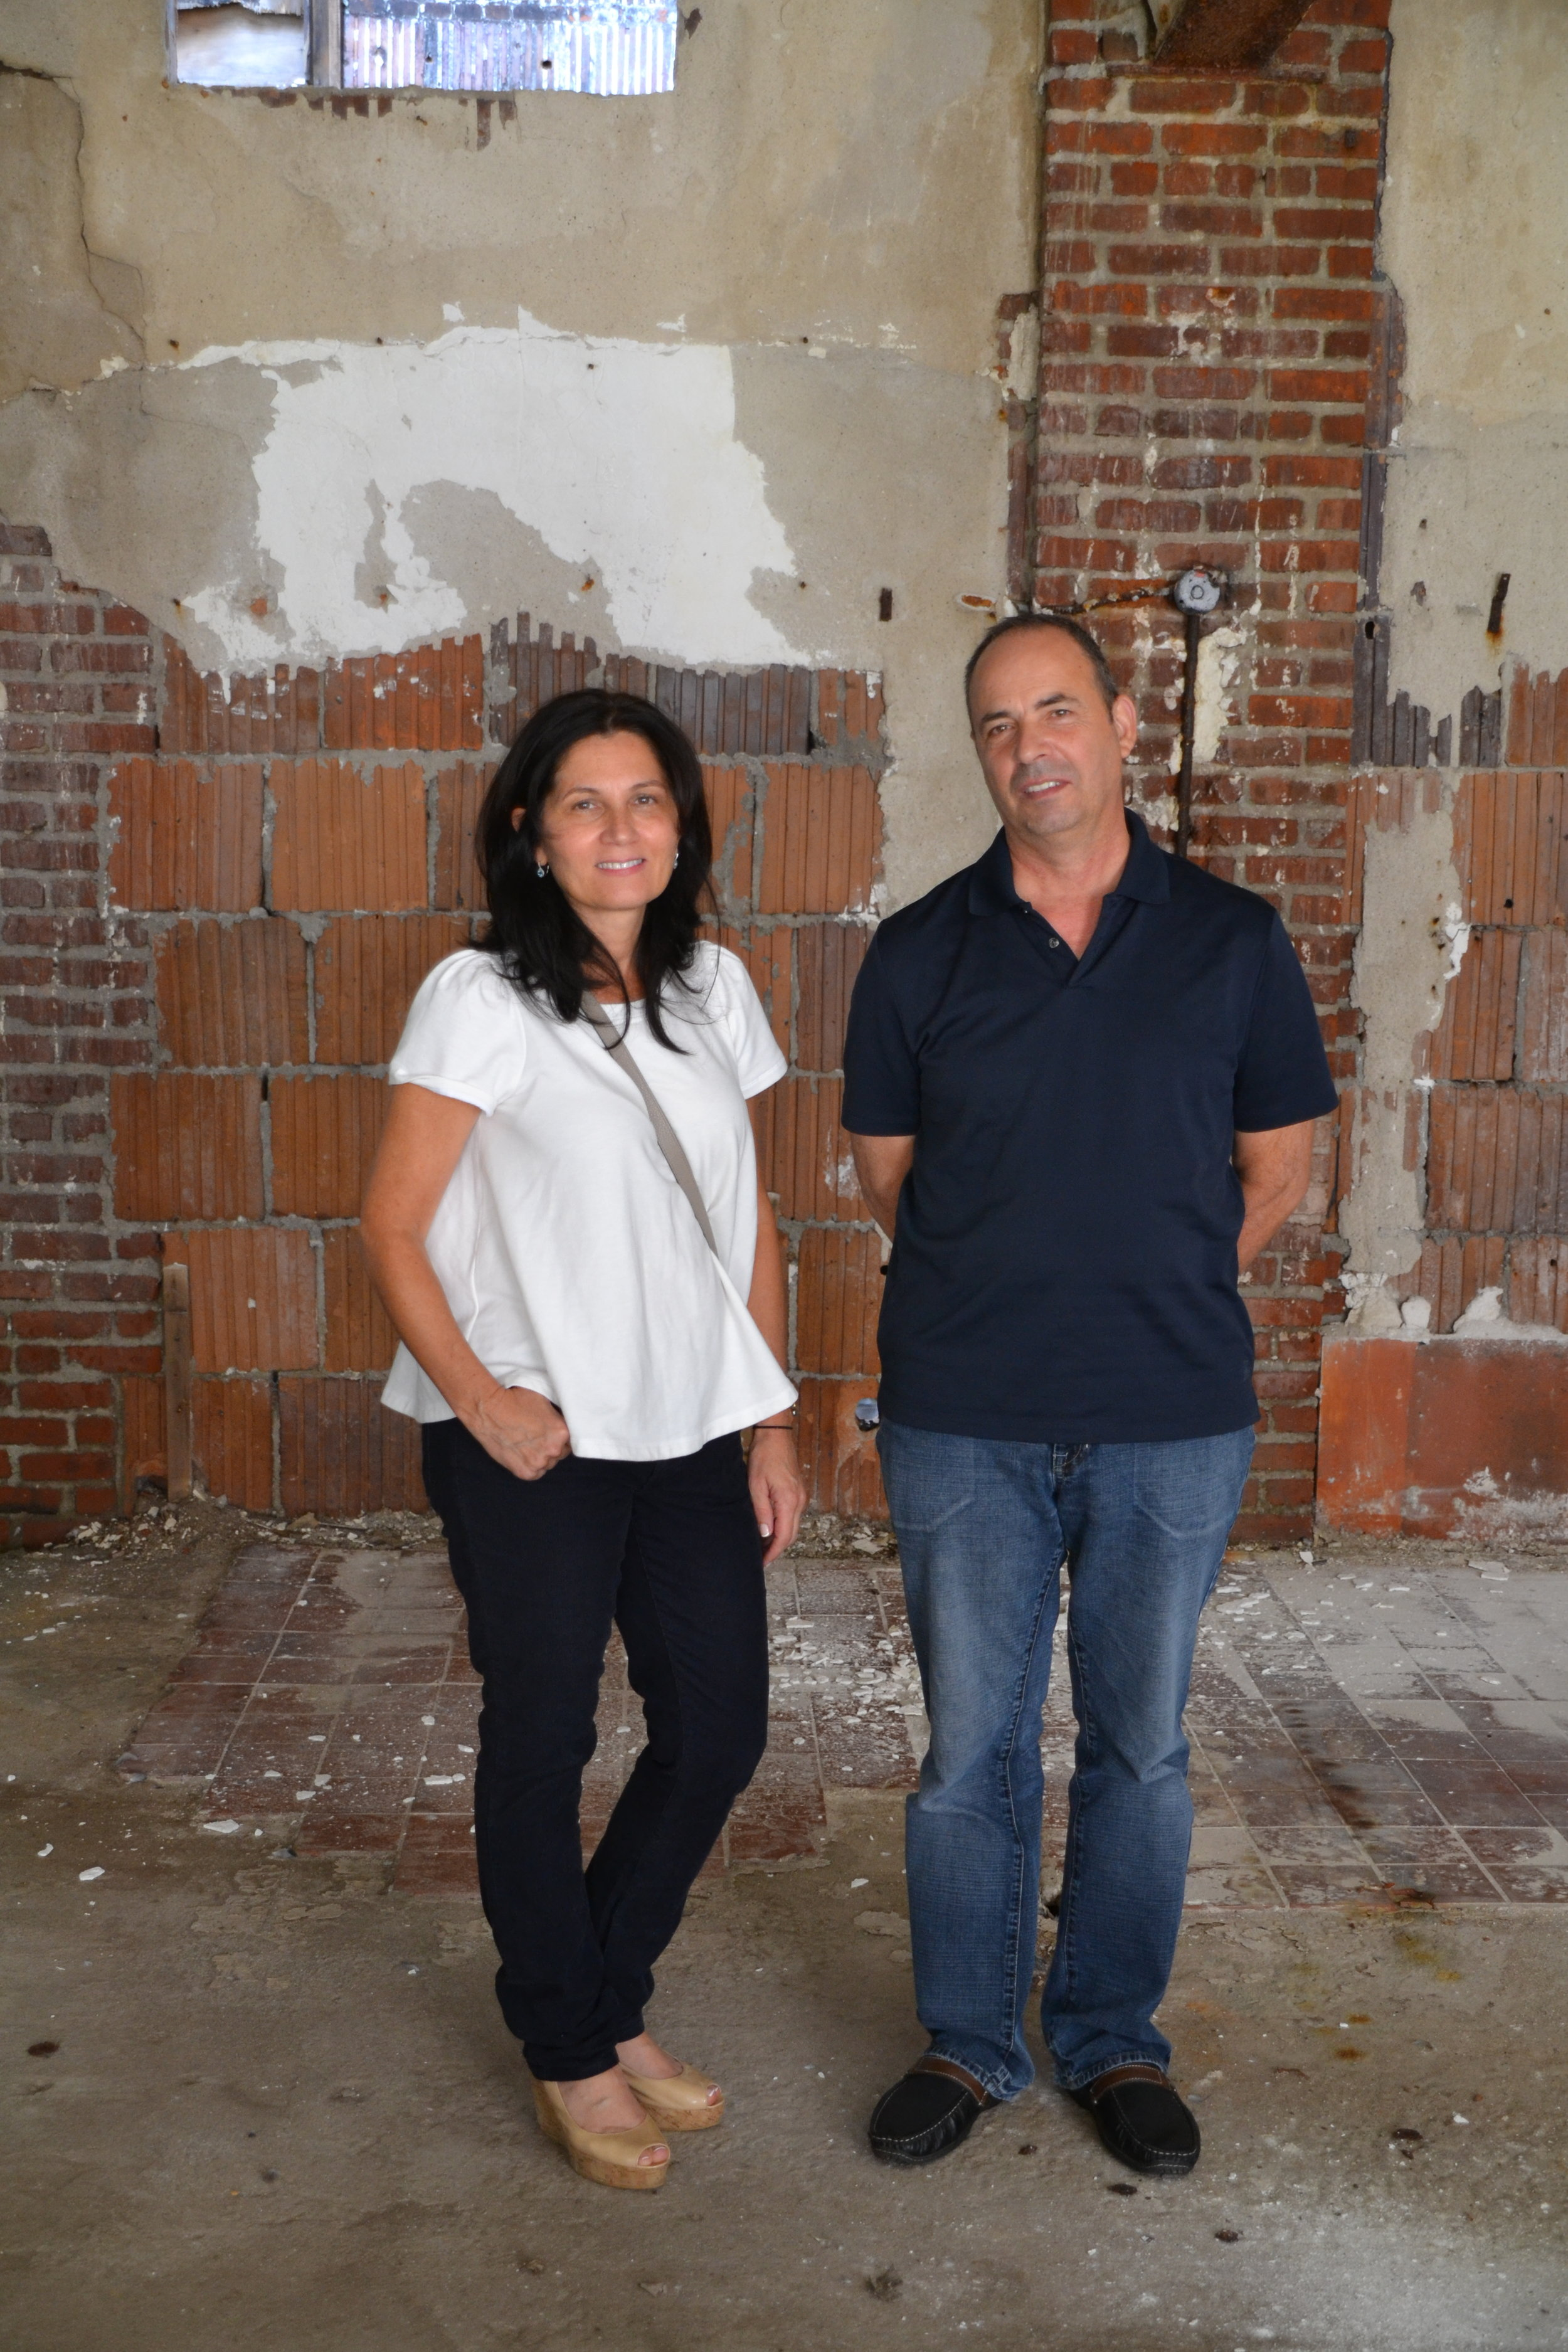 Felice and Robert Pelosi, owners of the Stadium Theatre, are eager to create a space that will contribute to the regeneration of Main Street.